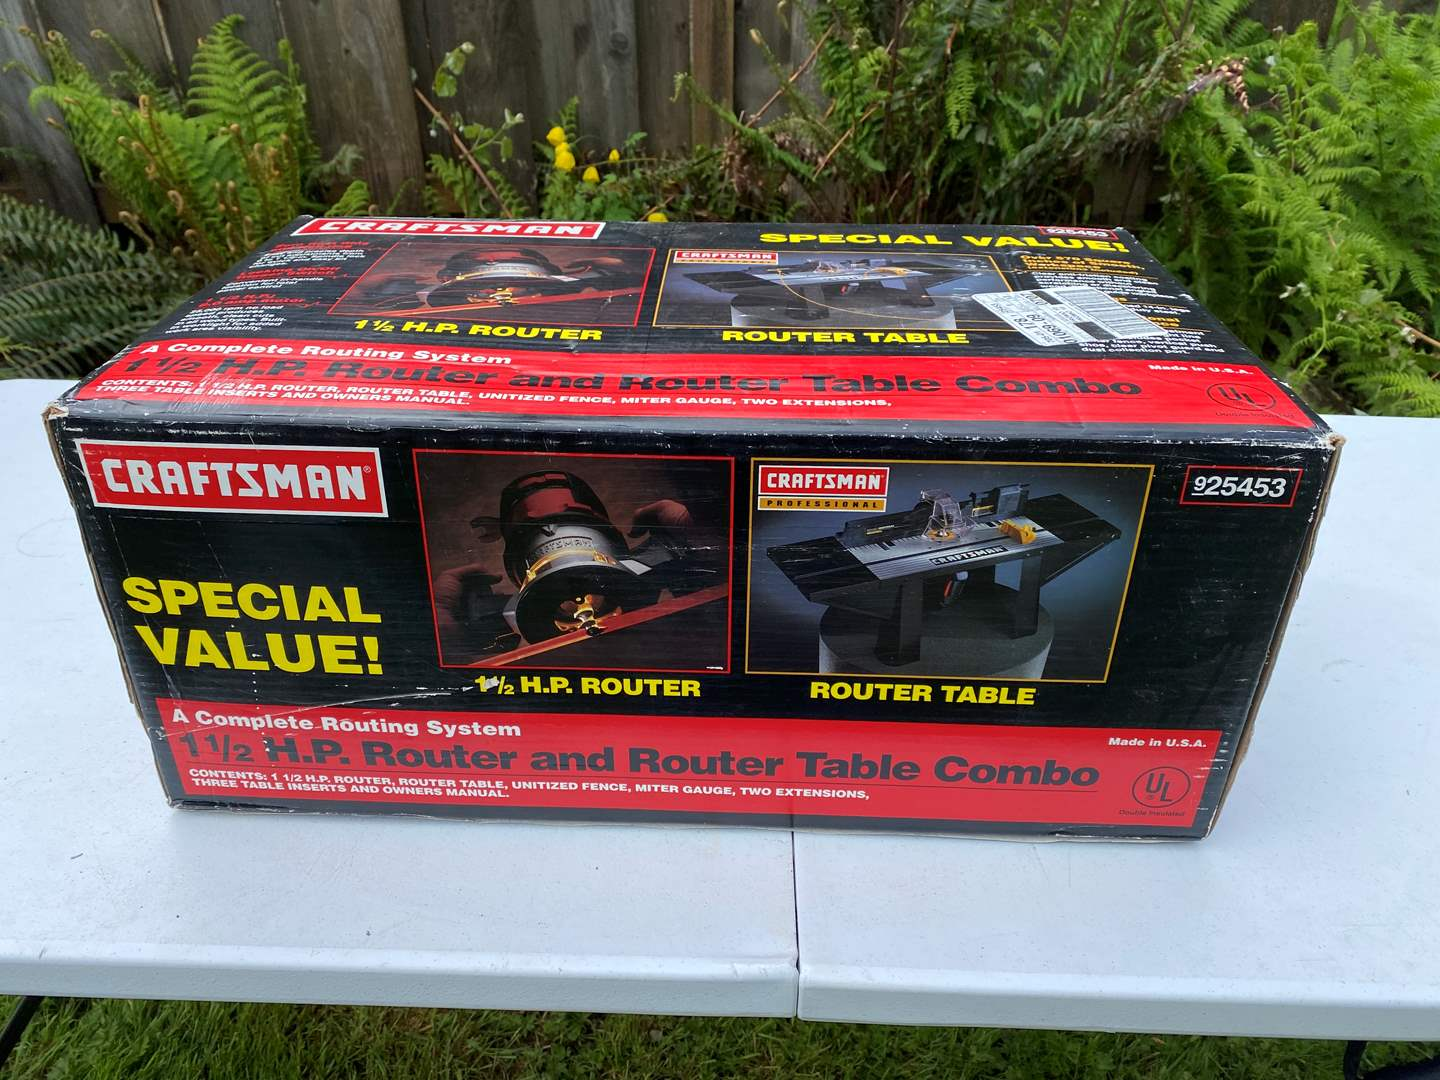 Lot # 240 - New in Box Craftsman 1-1/2 H.P. Router & Router Table Combo (main image)